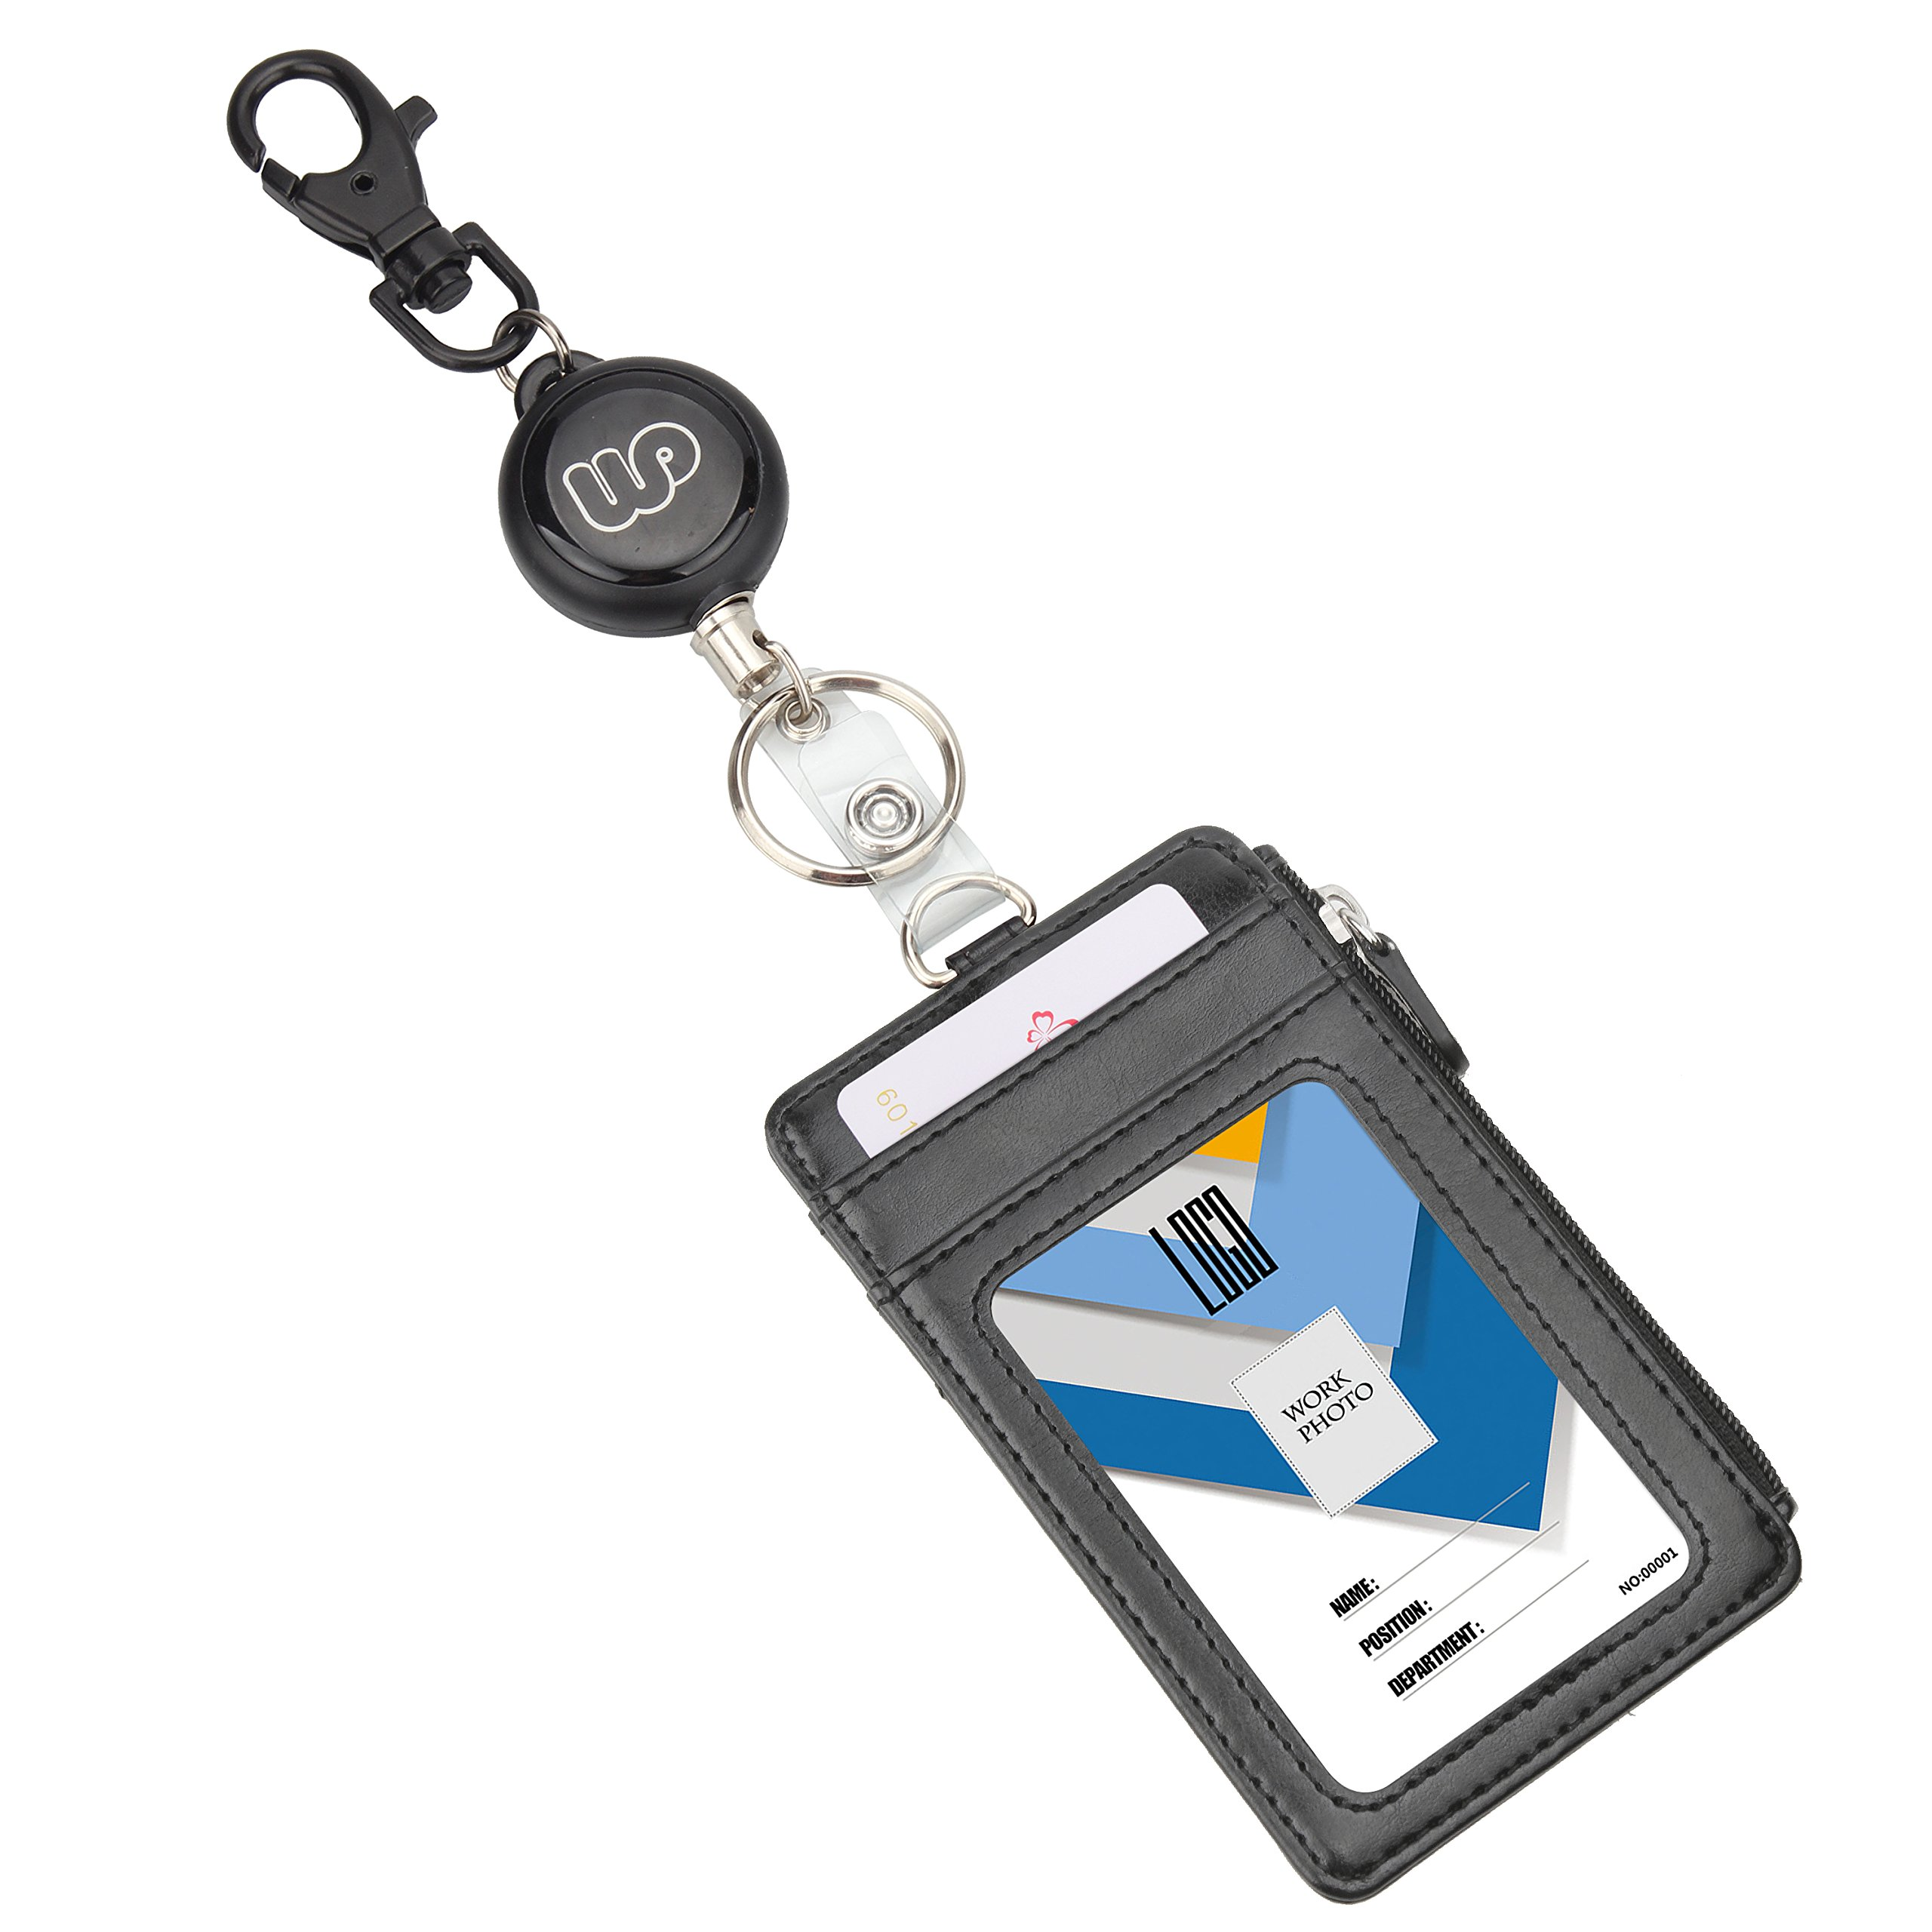 Wisdompro Heavy Duty Retractable Reel with Key Ring and Double Sided PU Leather ID Card Badge Holder Wallet with 1 Side Zipper Pocket, 5 Card Slots for Office ID, School ID (Vertical)